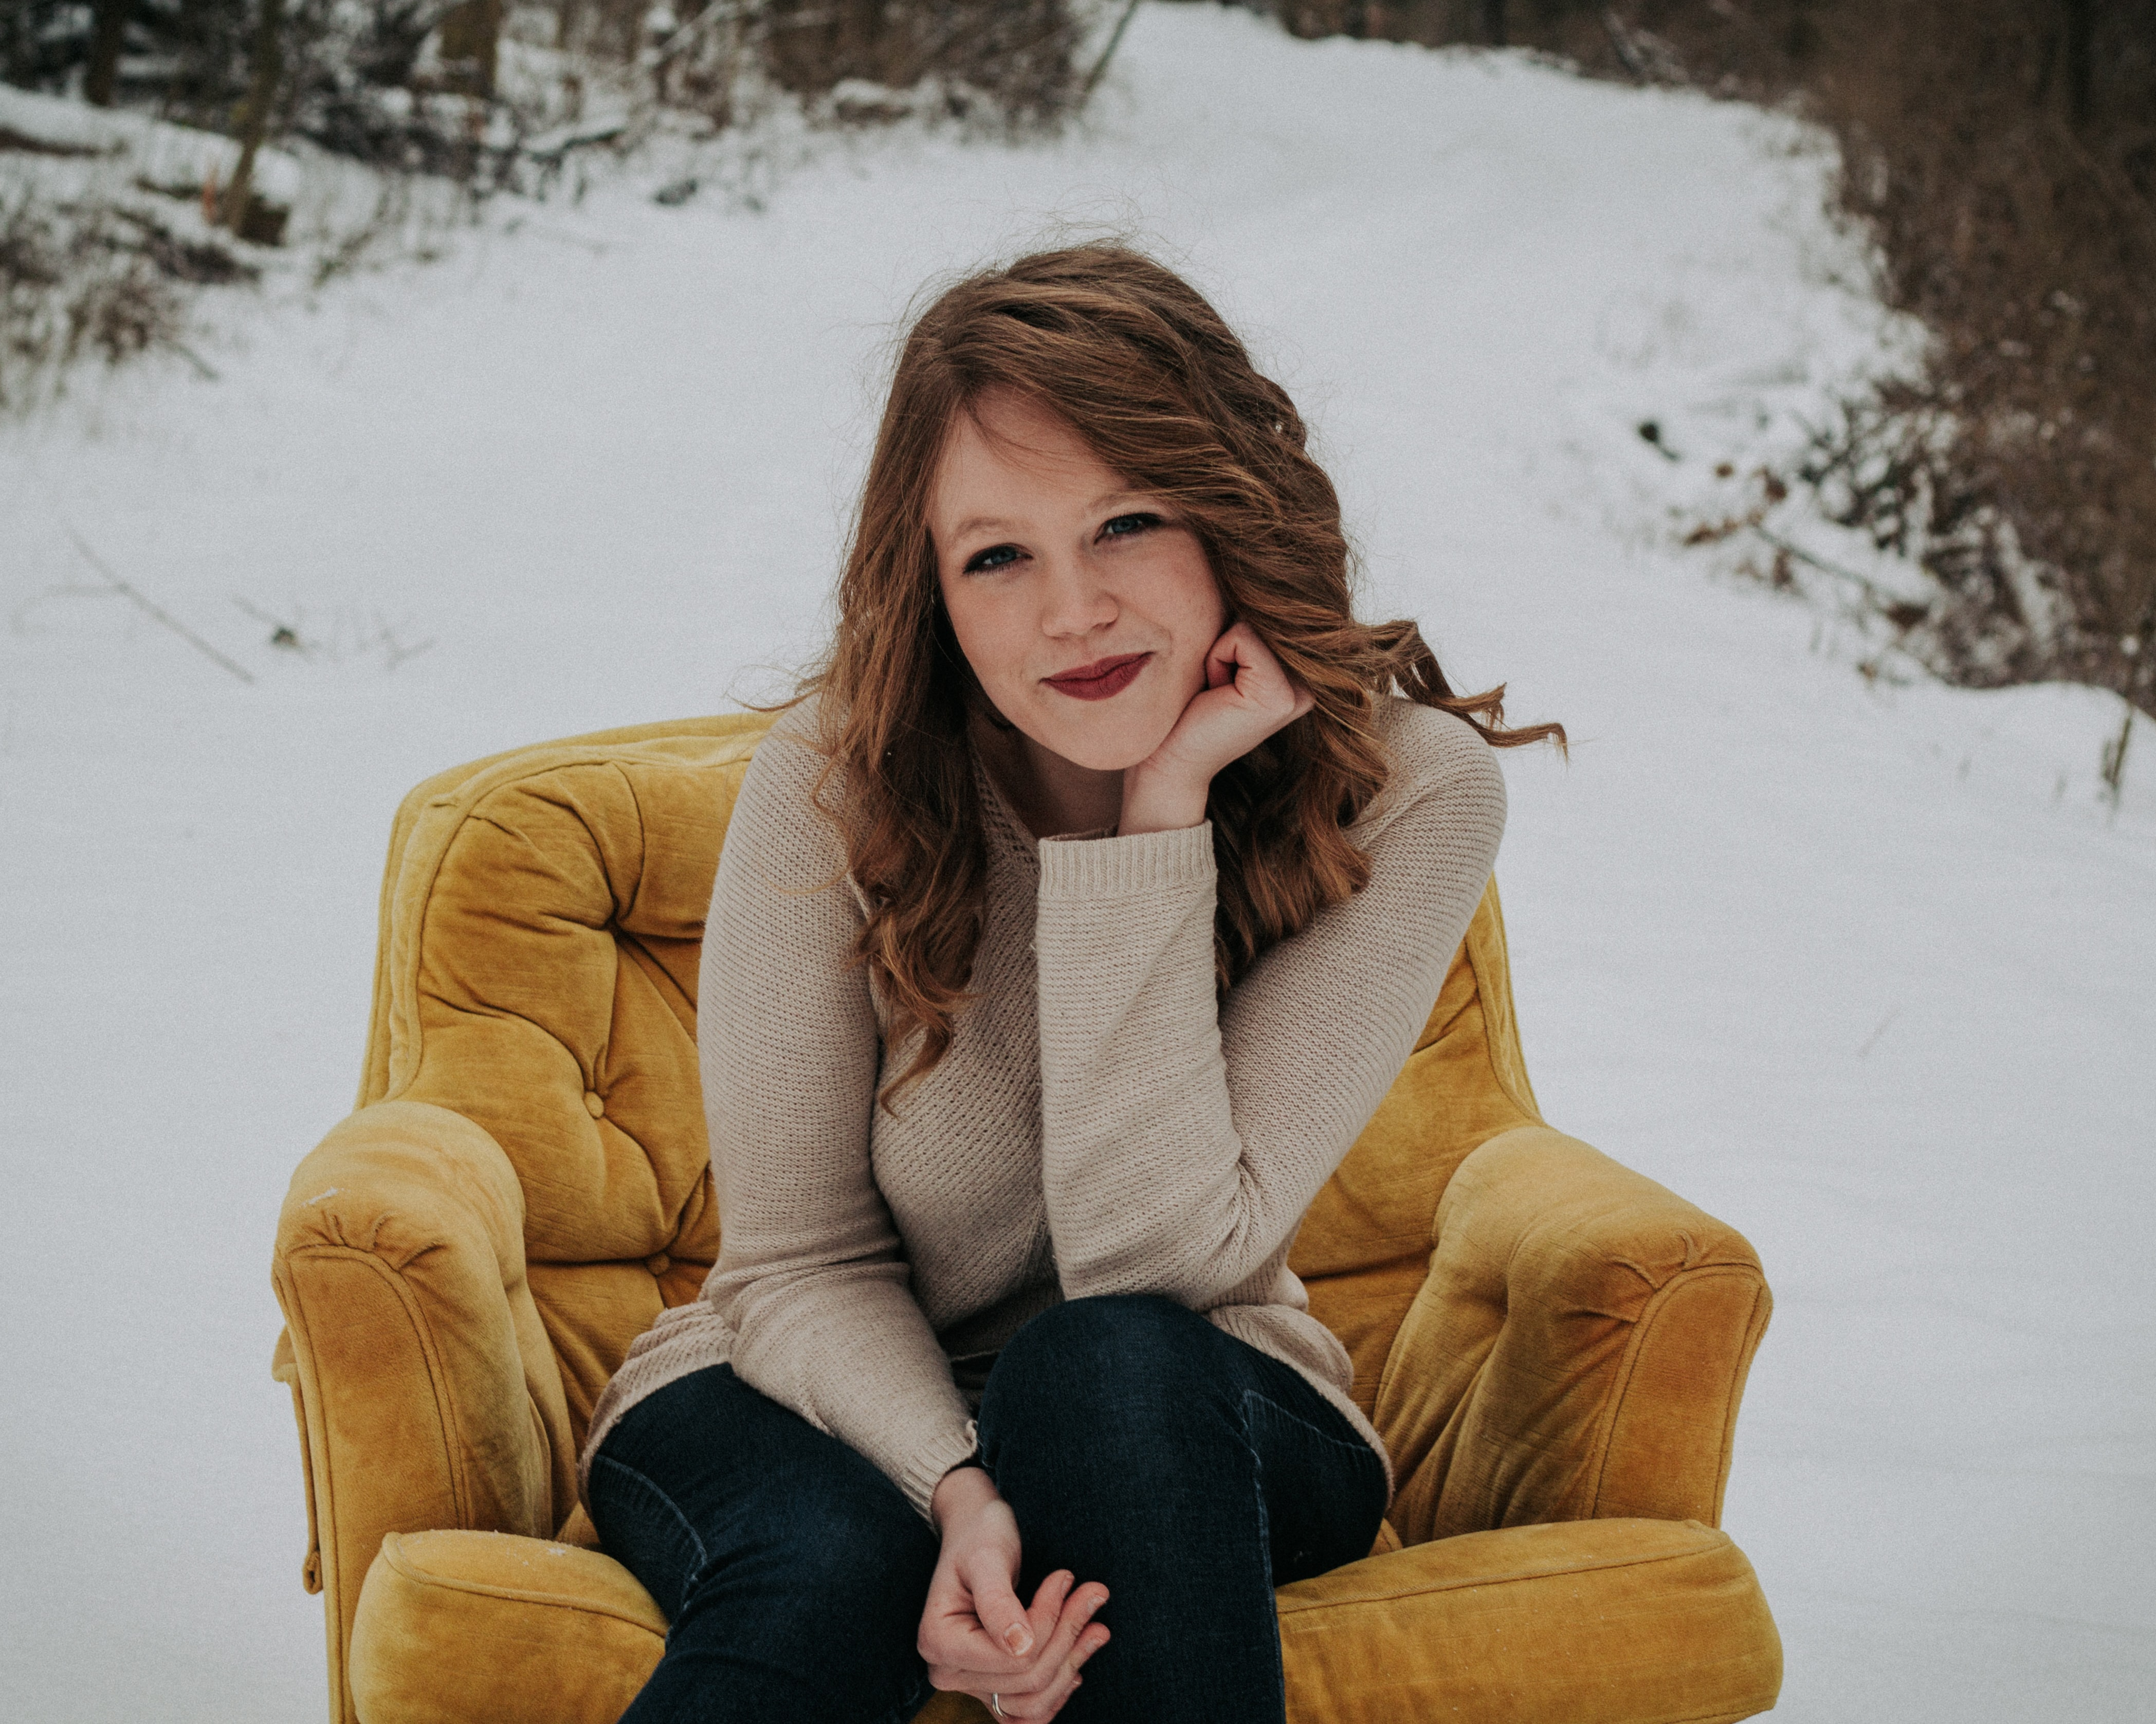 woman sitting on sofa chair surrounded with snow and trees